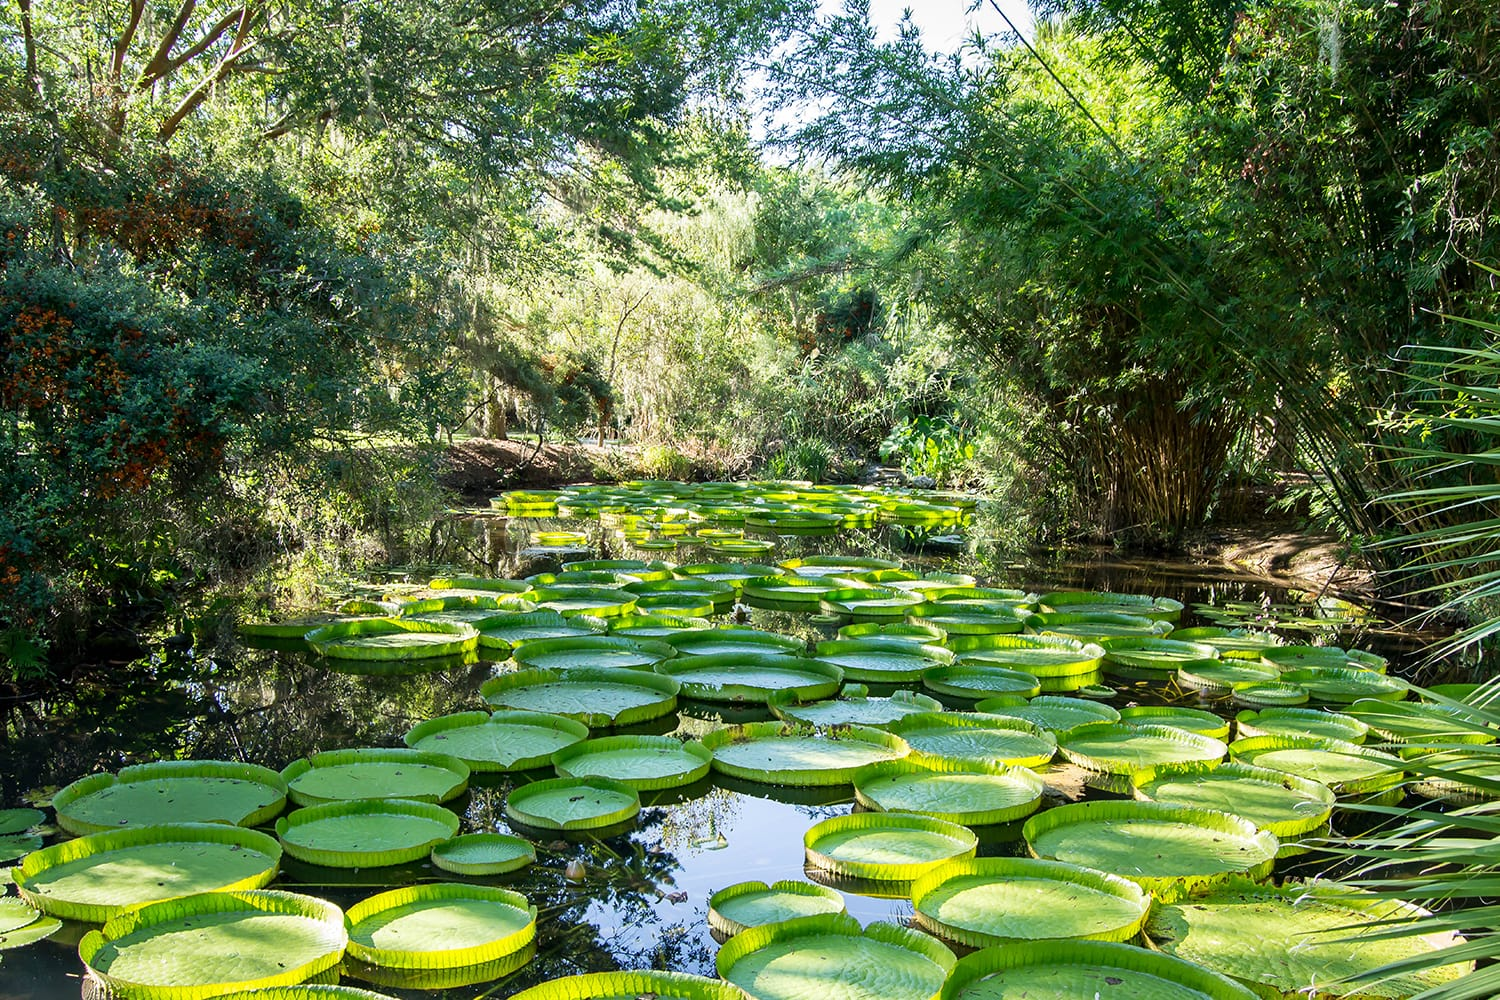 Victoria lily pads in the Kanapaha Garden, Gainesville, Florida, USA